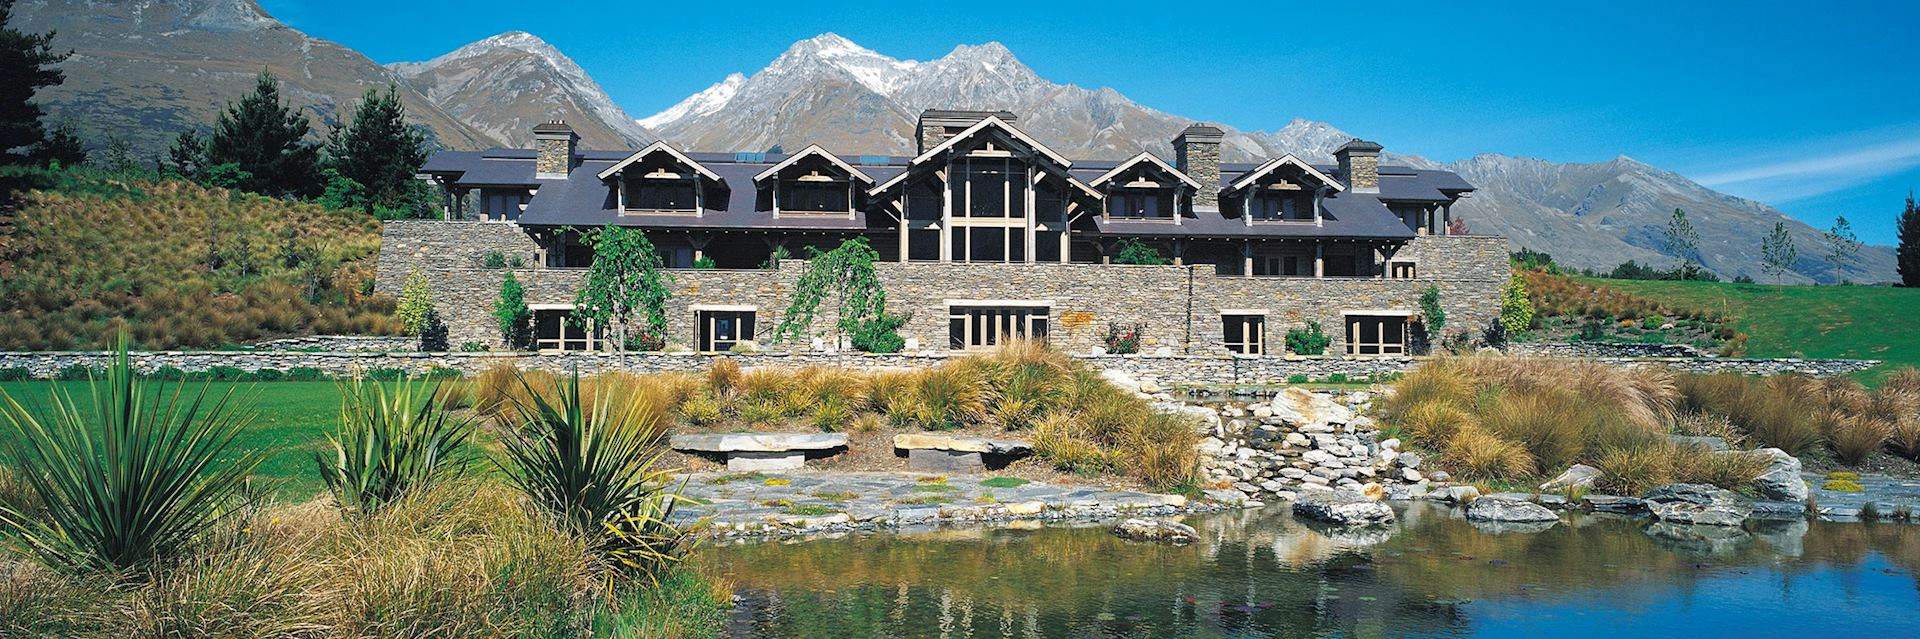 Blanket Bay Lodge, Glenorchy, New Zealand